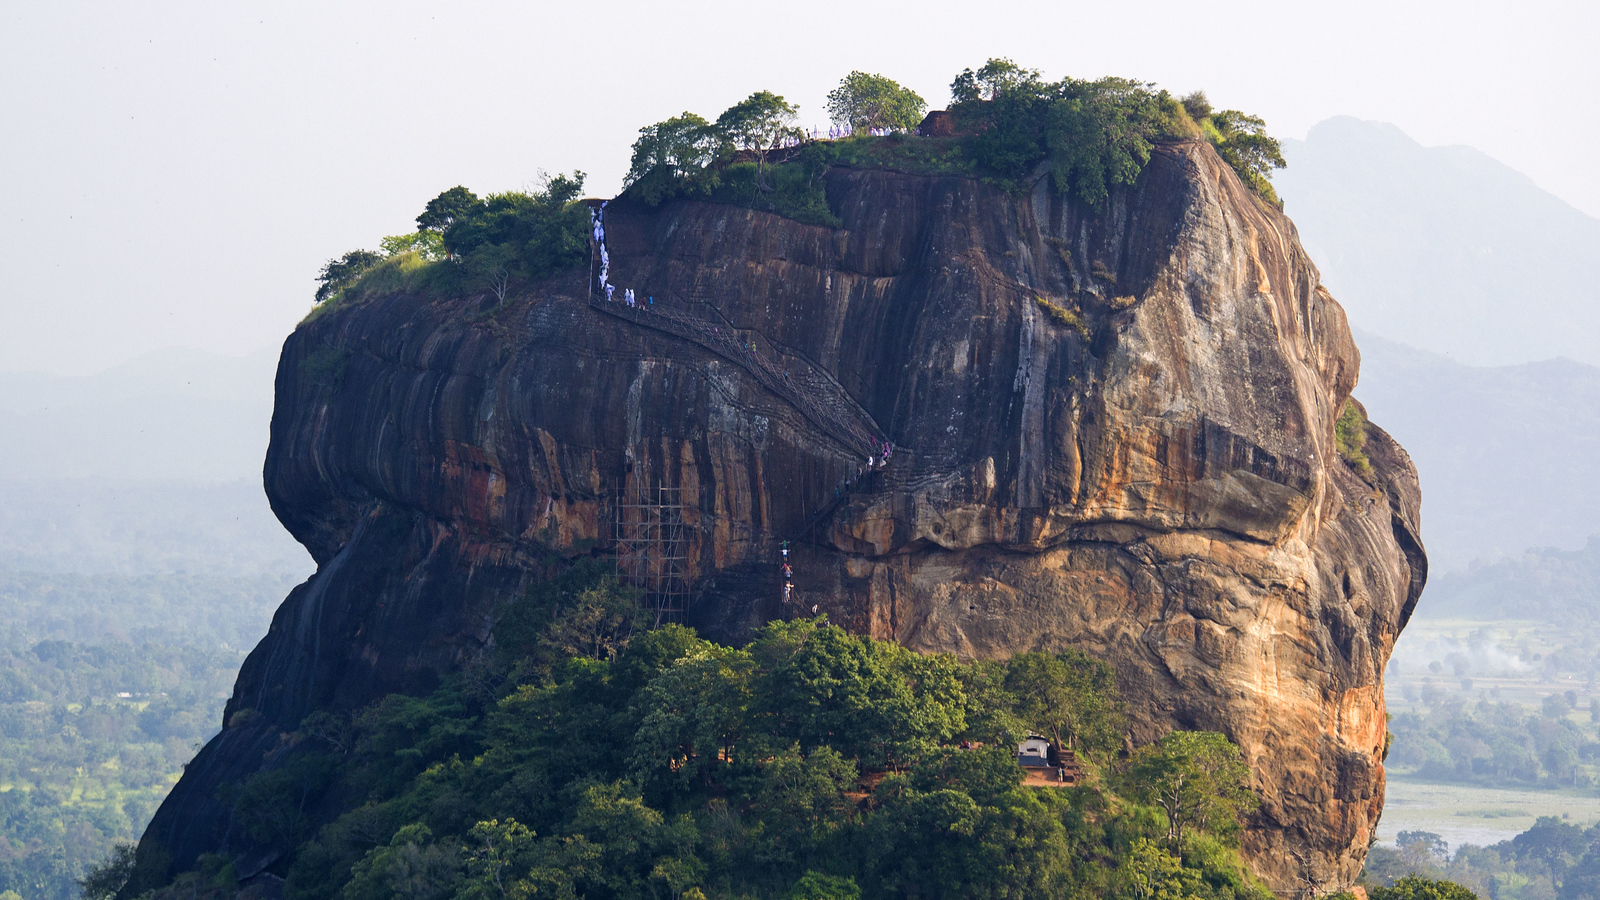 Pidurangala Rock: An Overlooked Gem You've Gotta Hike